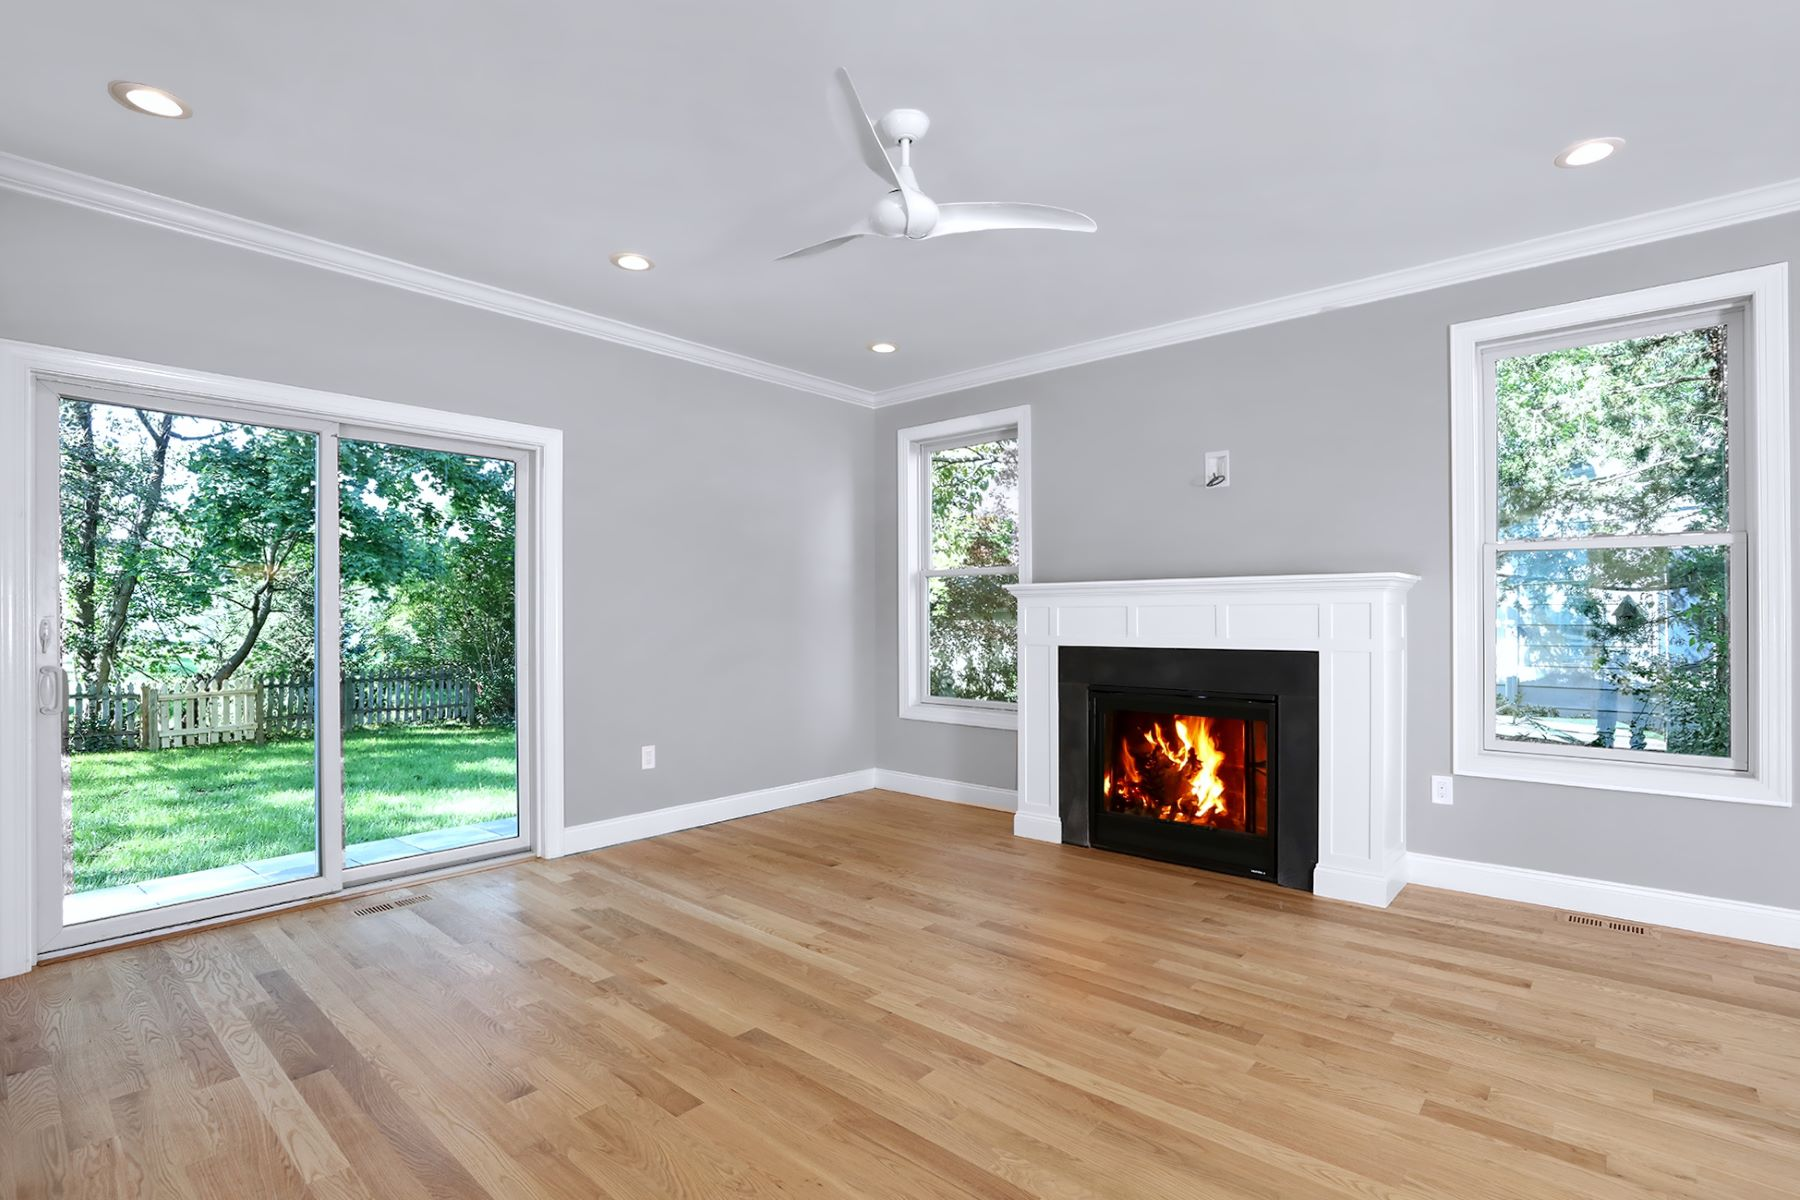 Additional photo for property listing at New Construction On A Tree Street! 112 Linden Lane, Princeton, New Jersey 08540 United States